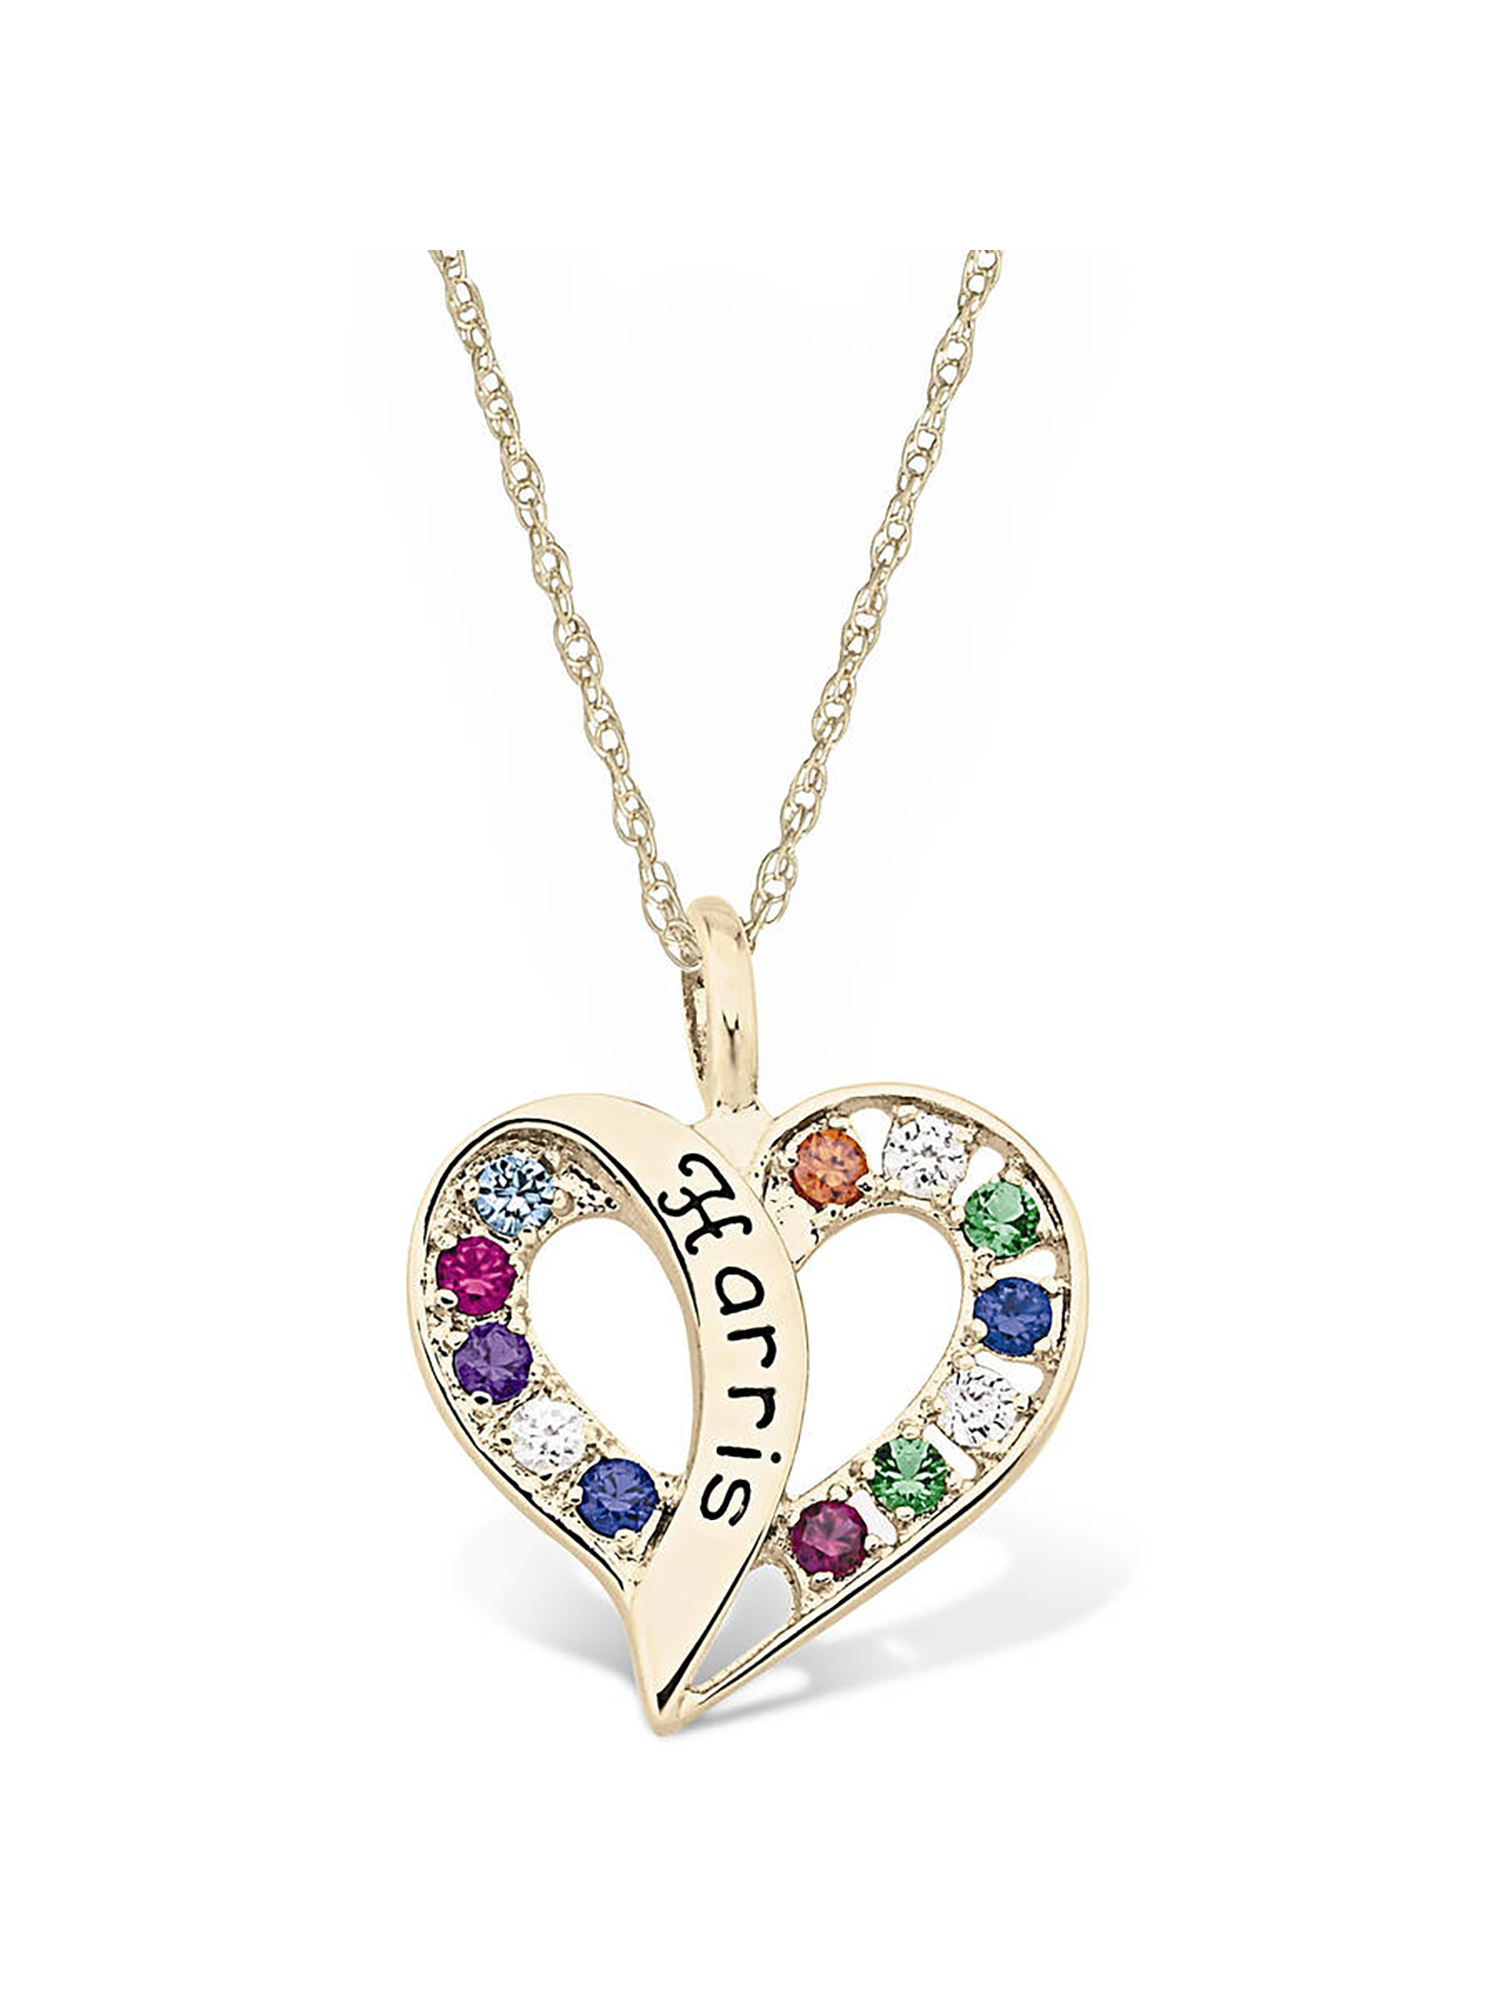 Keepsake Personalized Family Jewelry Flowing Heart Gold Pendant available in Sterling Silver, 10kt and 14kt Yellow and White Gold